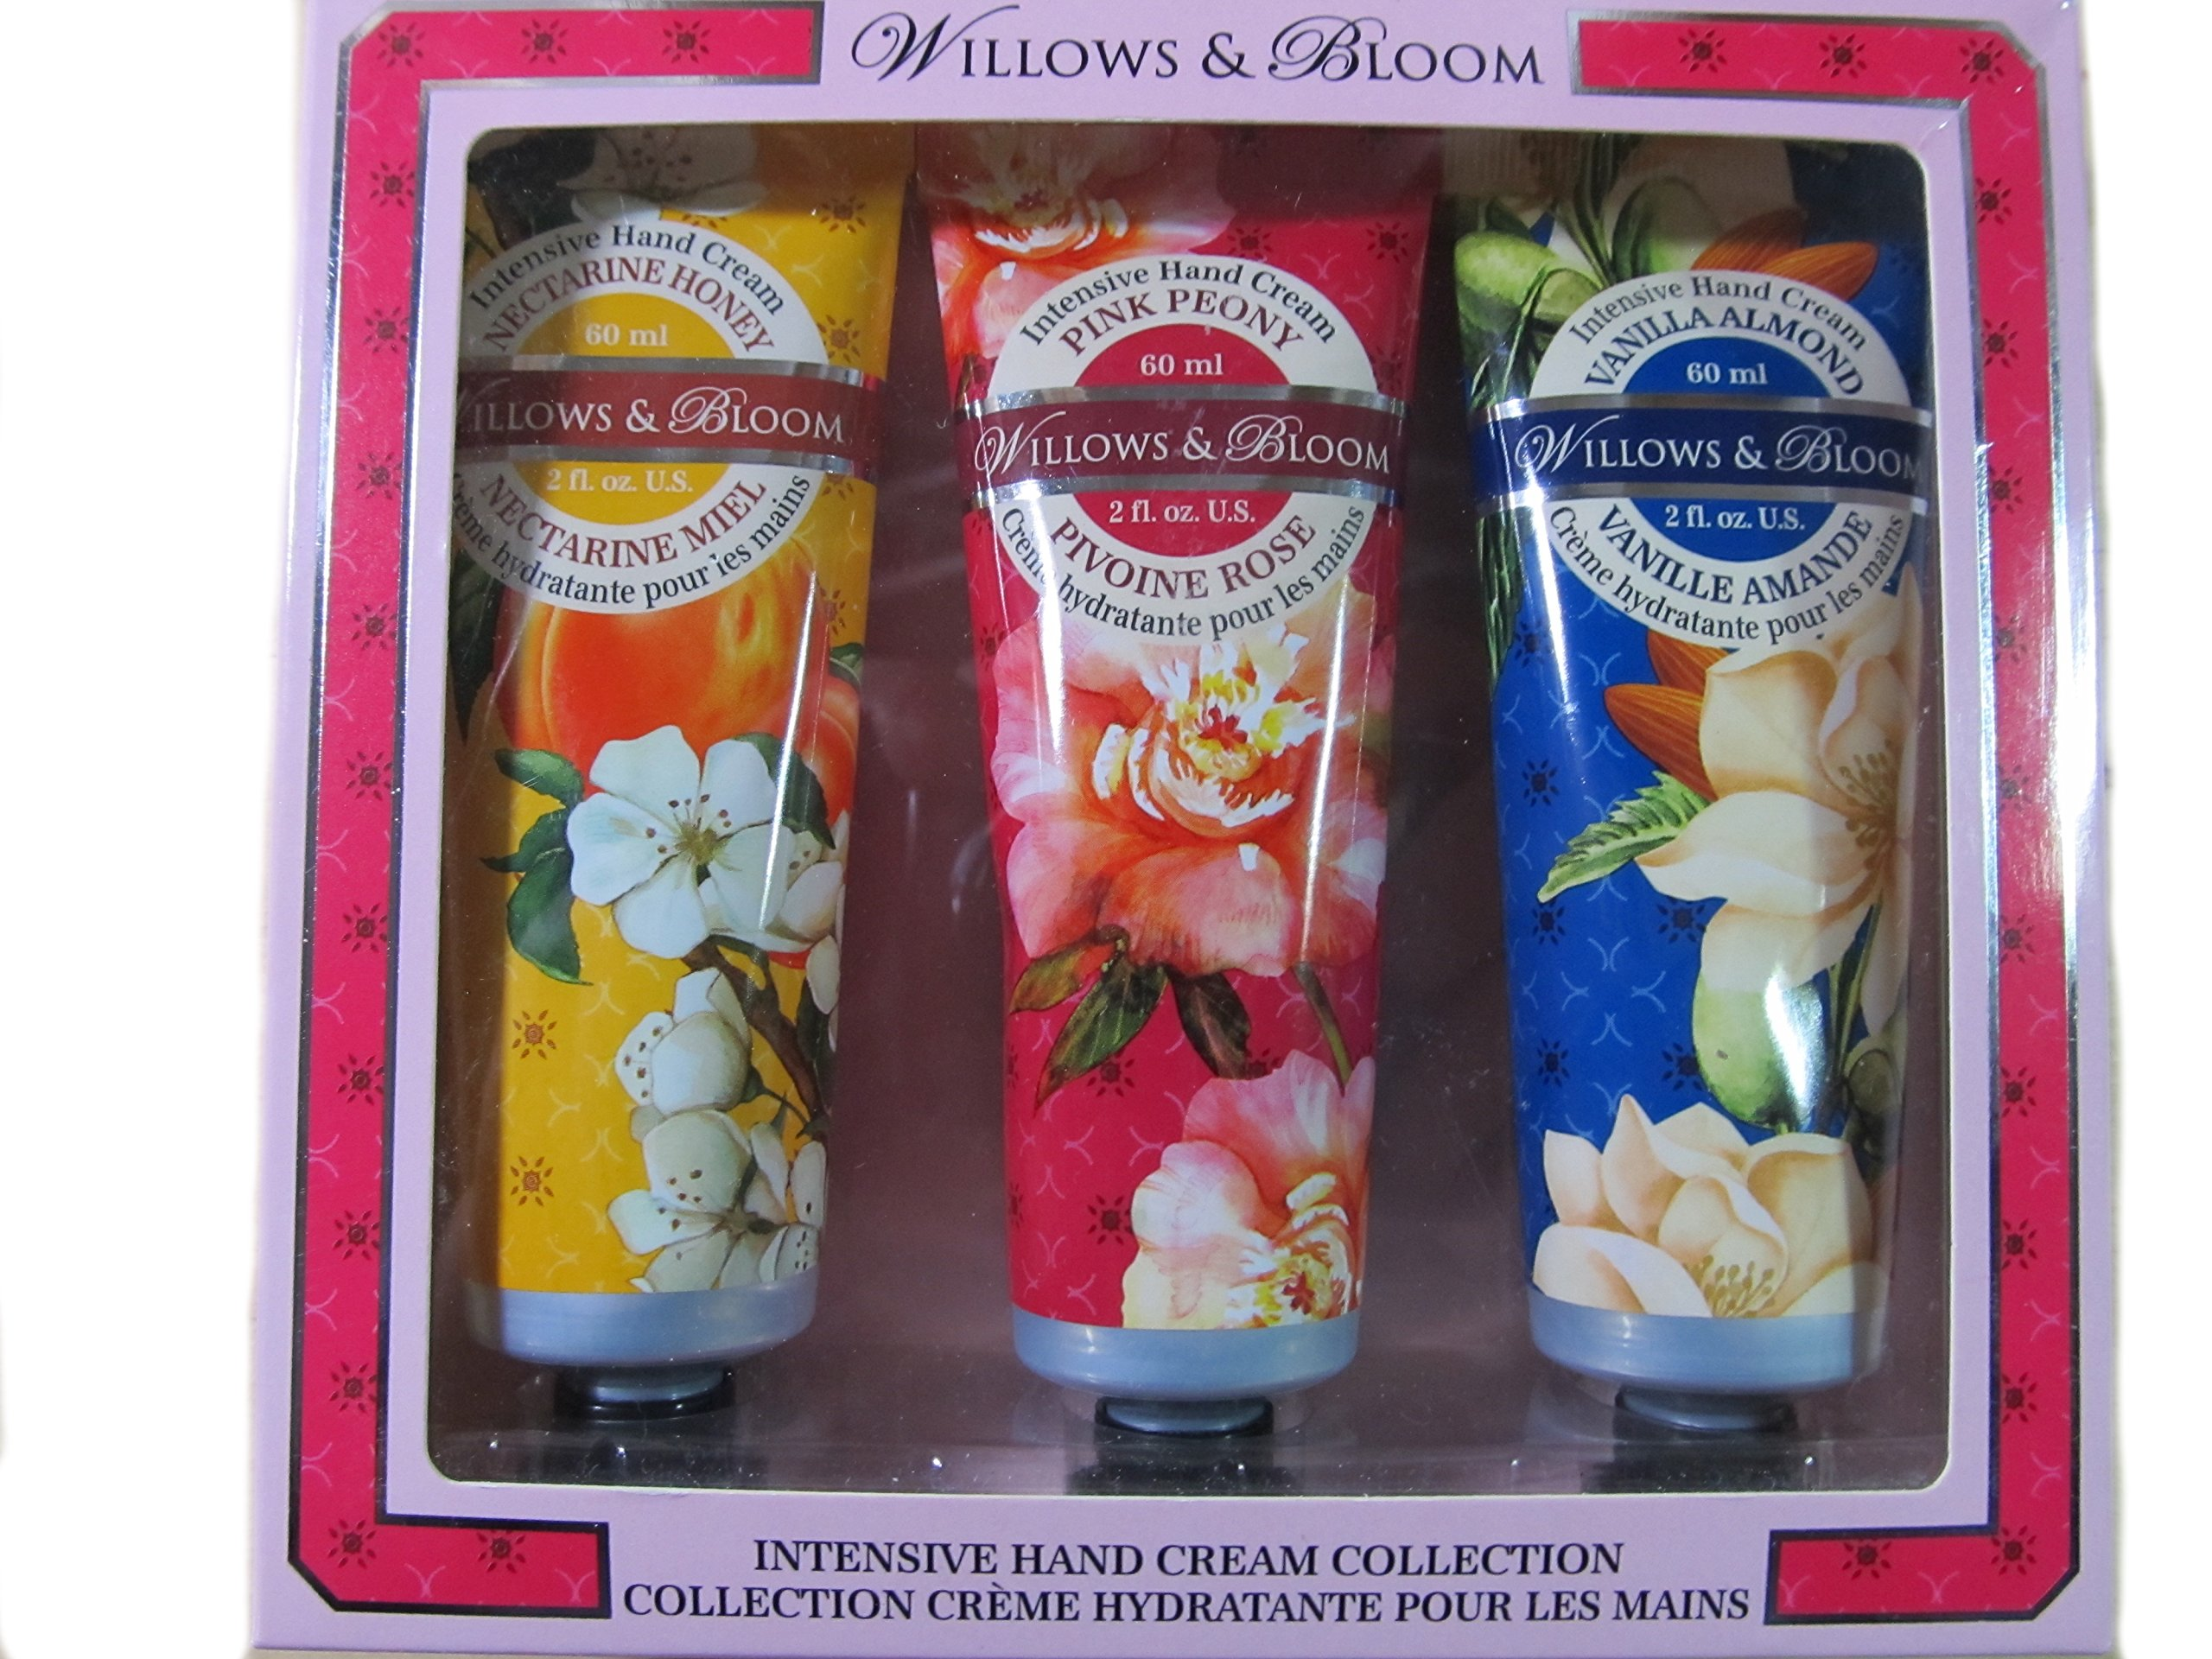 Willows & Bloom - Willows & Bloom Intensive Hand Cream Collection